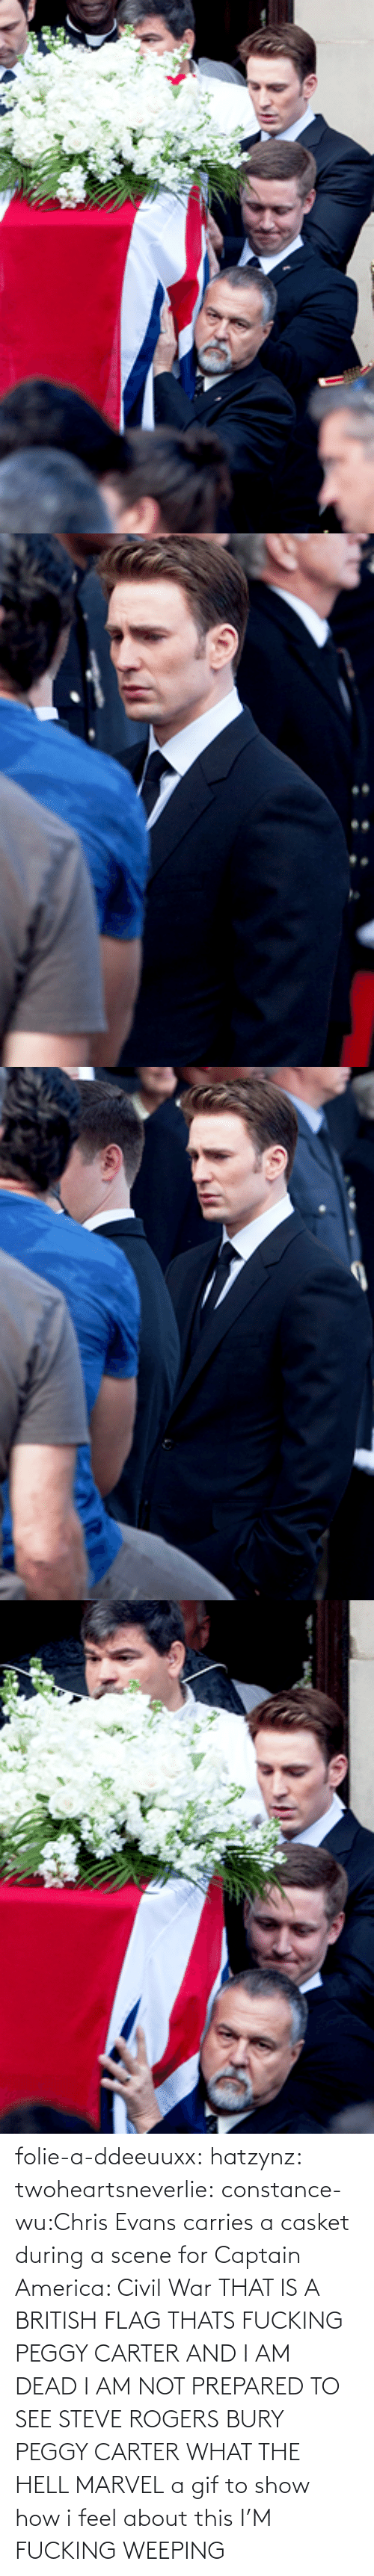 british flag: AREA folie-a-ddeeuuxx:  hatzynz:  twoheartsneverlie:  constance-wu:Chris Evans carries a casket during a scene for Captain America: Civil War THAT IS A BRITISH FLAG THATS FUCKING PEGGY CARTER AND I AM DEAD I AM NOT PREPARED TO SEE STEVE ROGERS BURY PEGGY CARTER WHAT THE HELL MARVEL  a gif to show how i feel about this  I'M FUCKING WEEPING